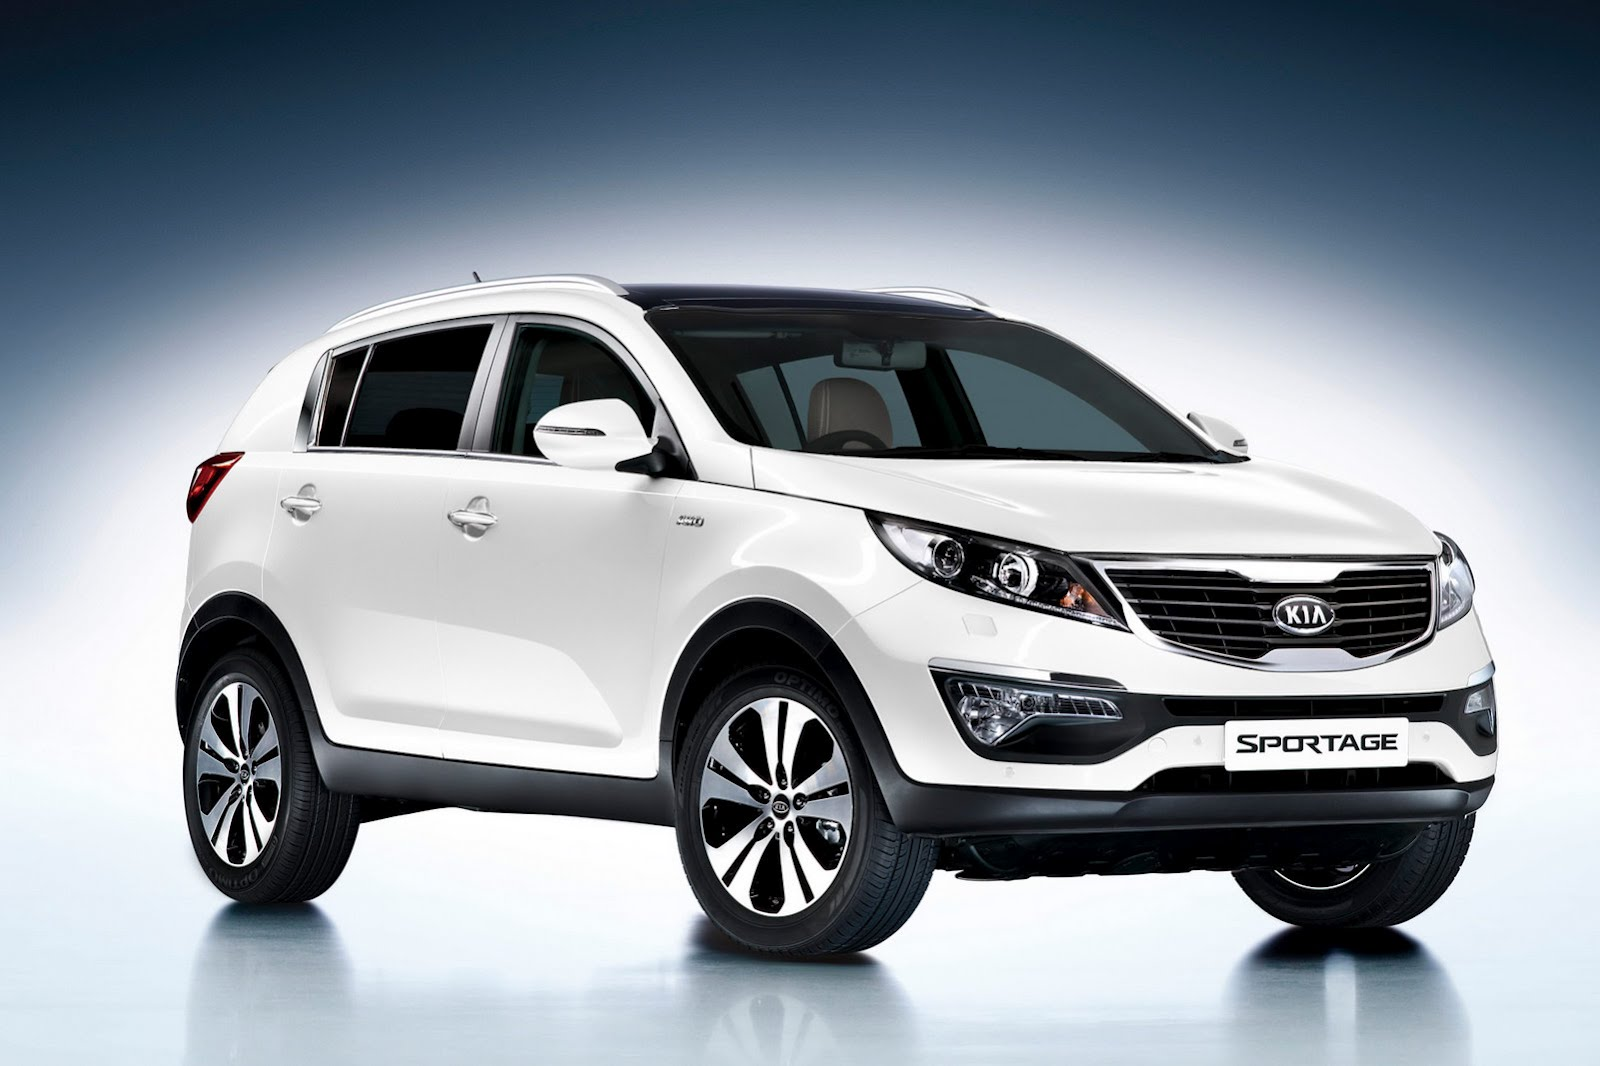 kia sportage car photos kia sportage car videos. Black Bedroom Furniture Sets. Home Design Ideas